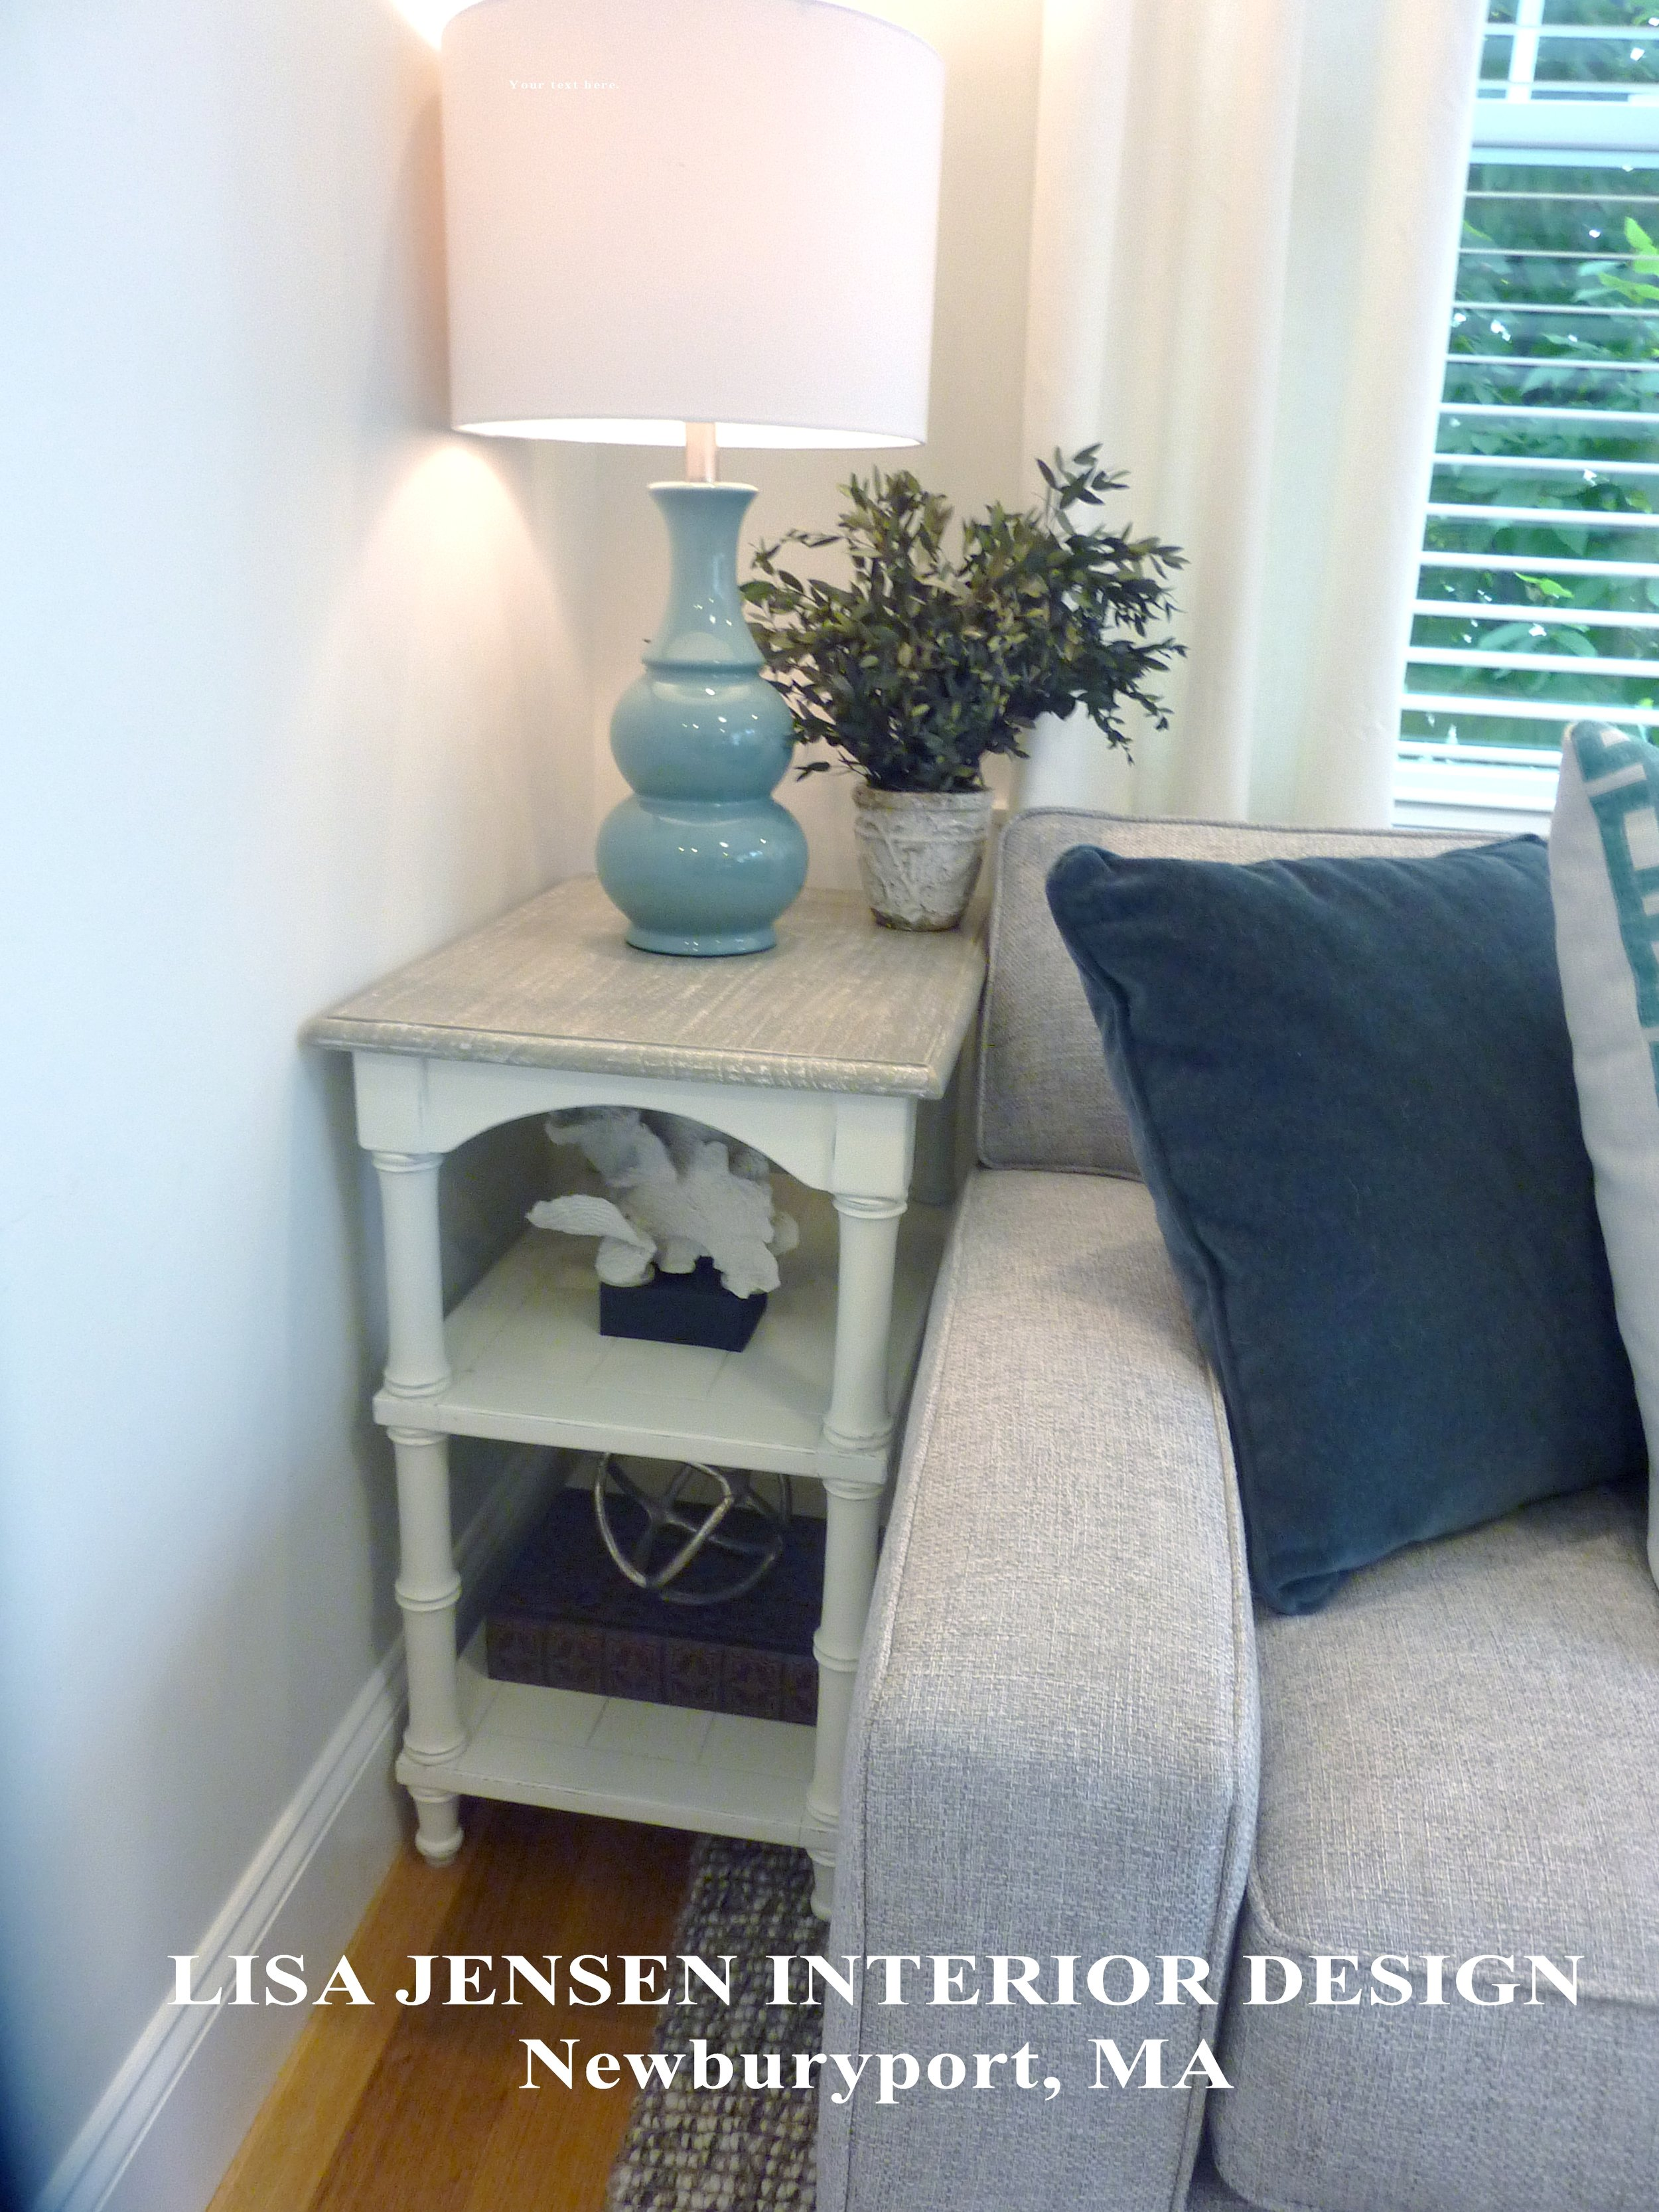 Lisa Jensen Interior Design selected the perfectly sized petite end tables for her client's small den.